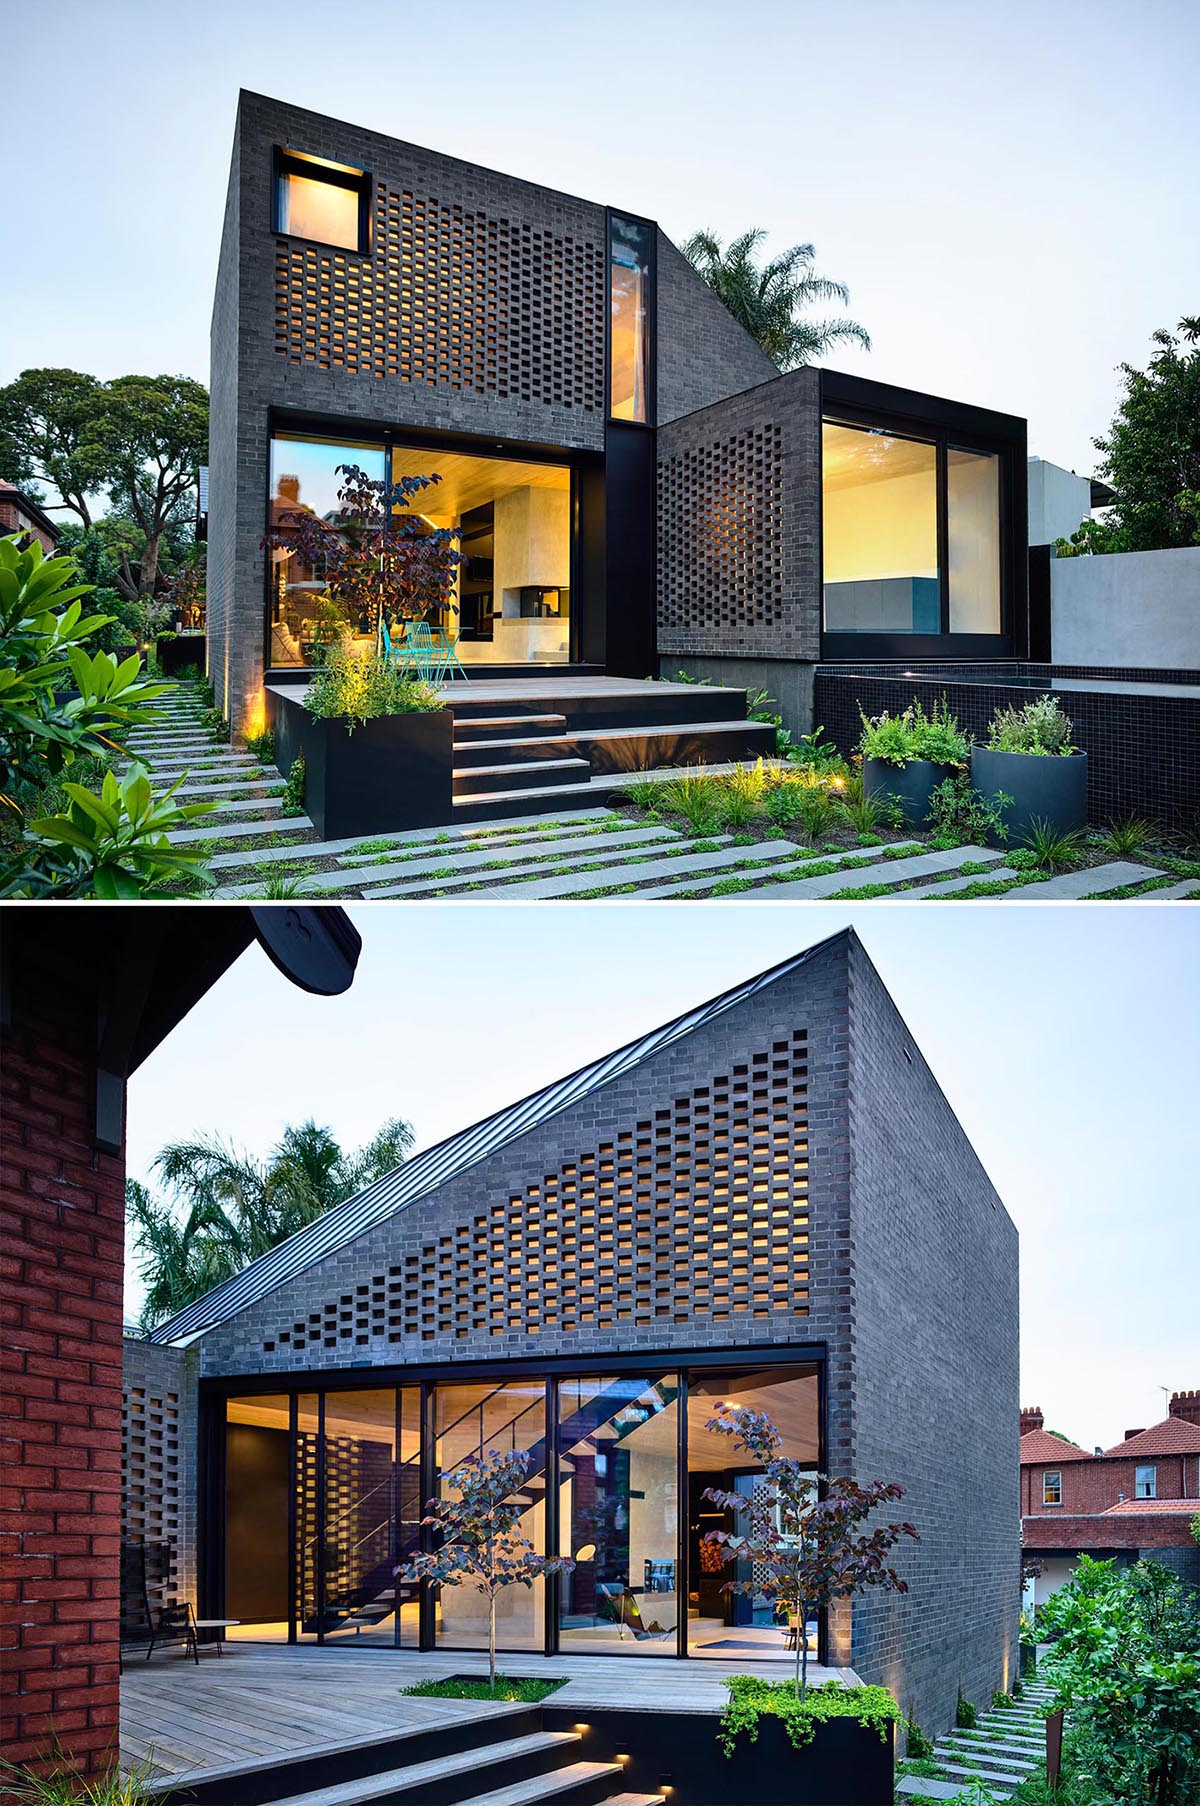 A modern dark brick house addition  with a swimming pool and landscaped path.